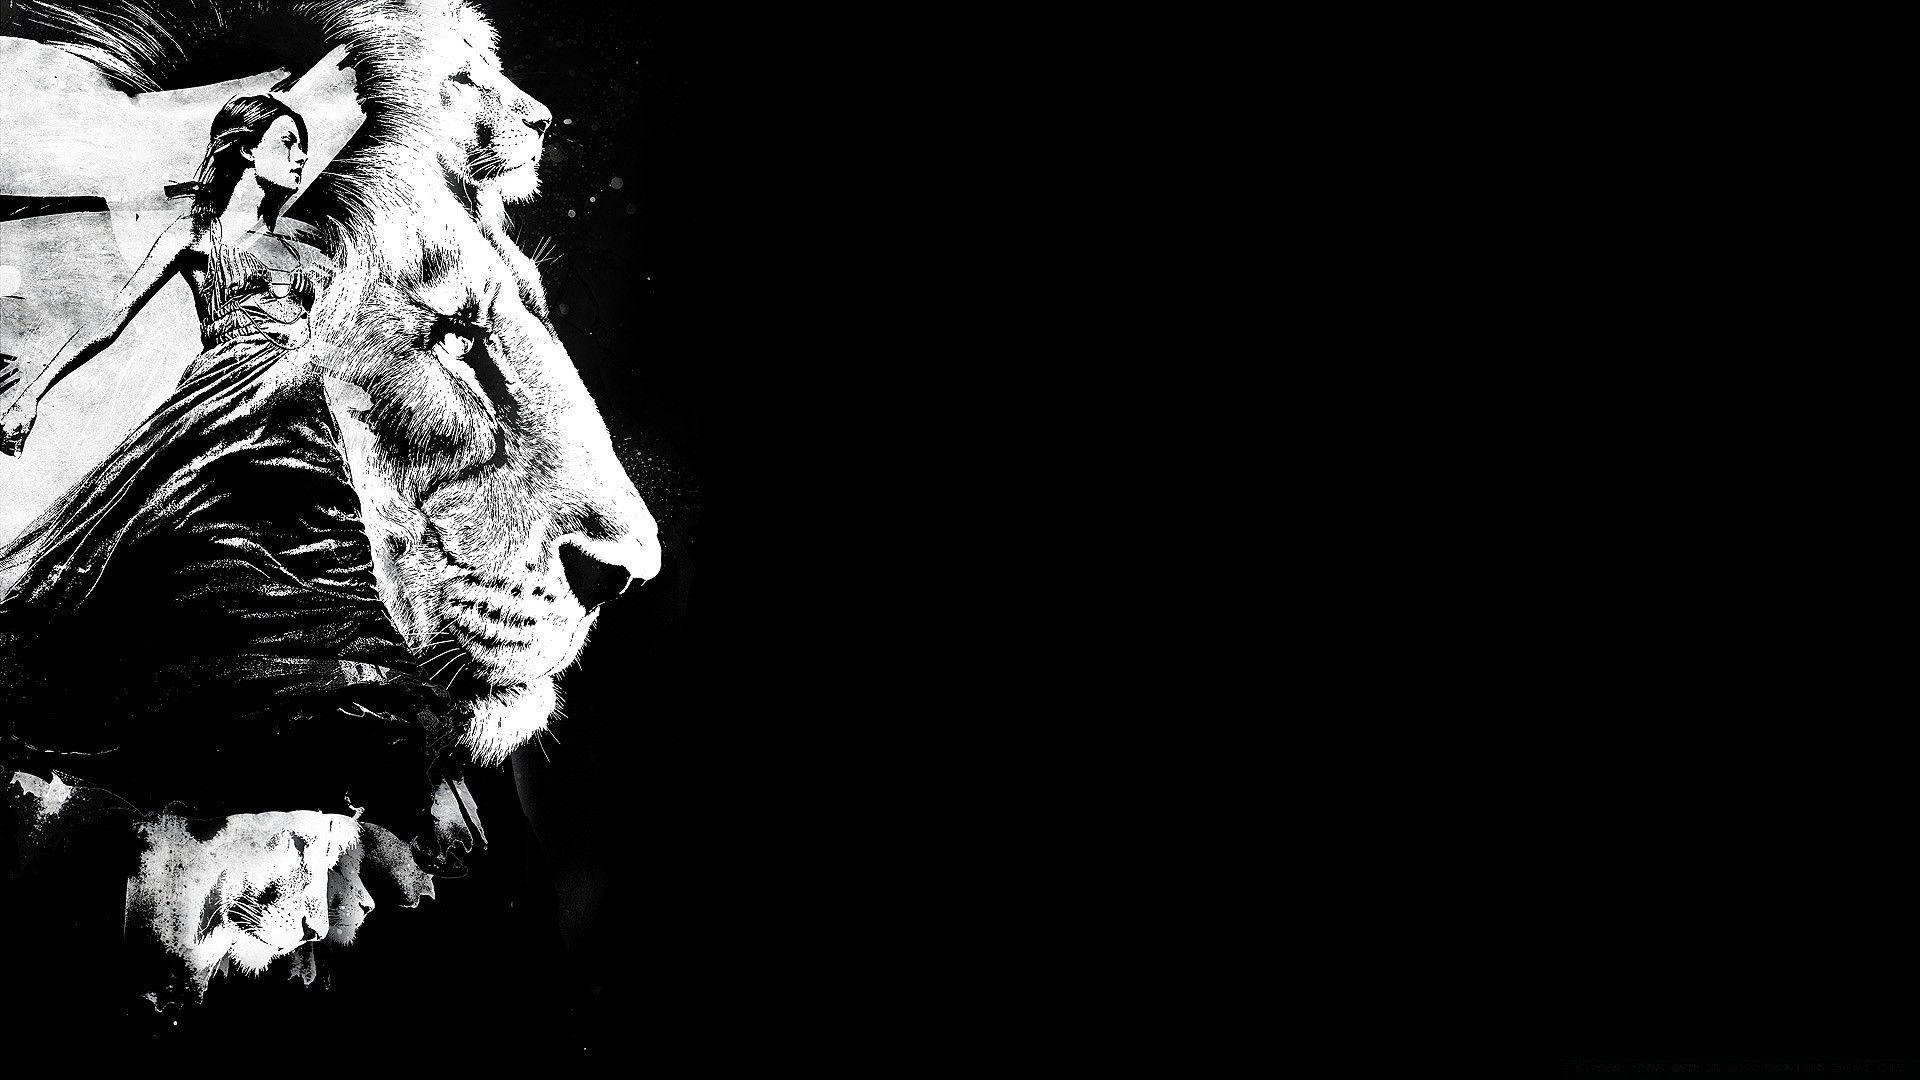 Lion Black And White Animal Wallpaper And Themes Lion Black And White 1920x1080 Wallpaper Teahub Io